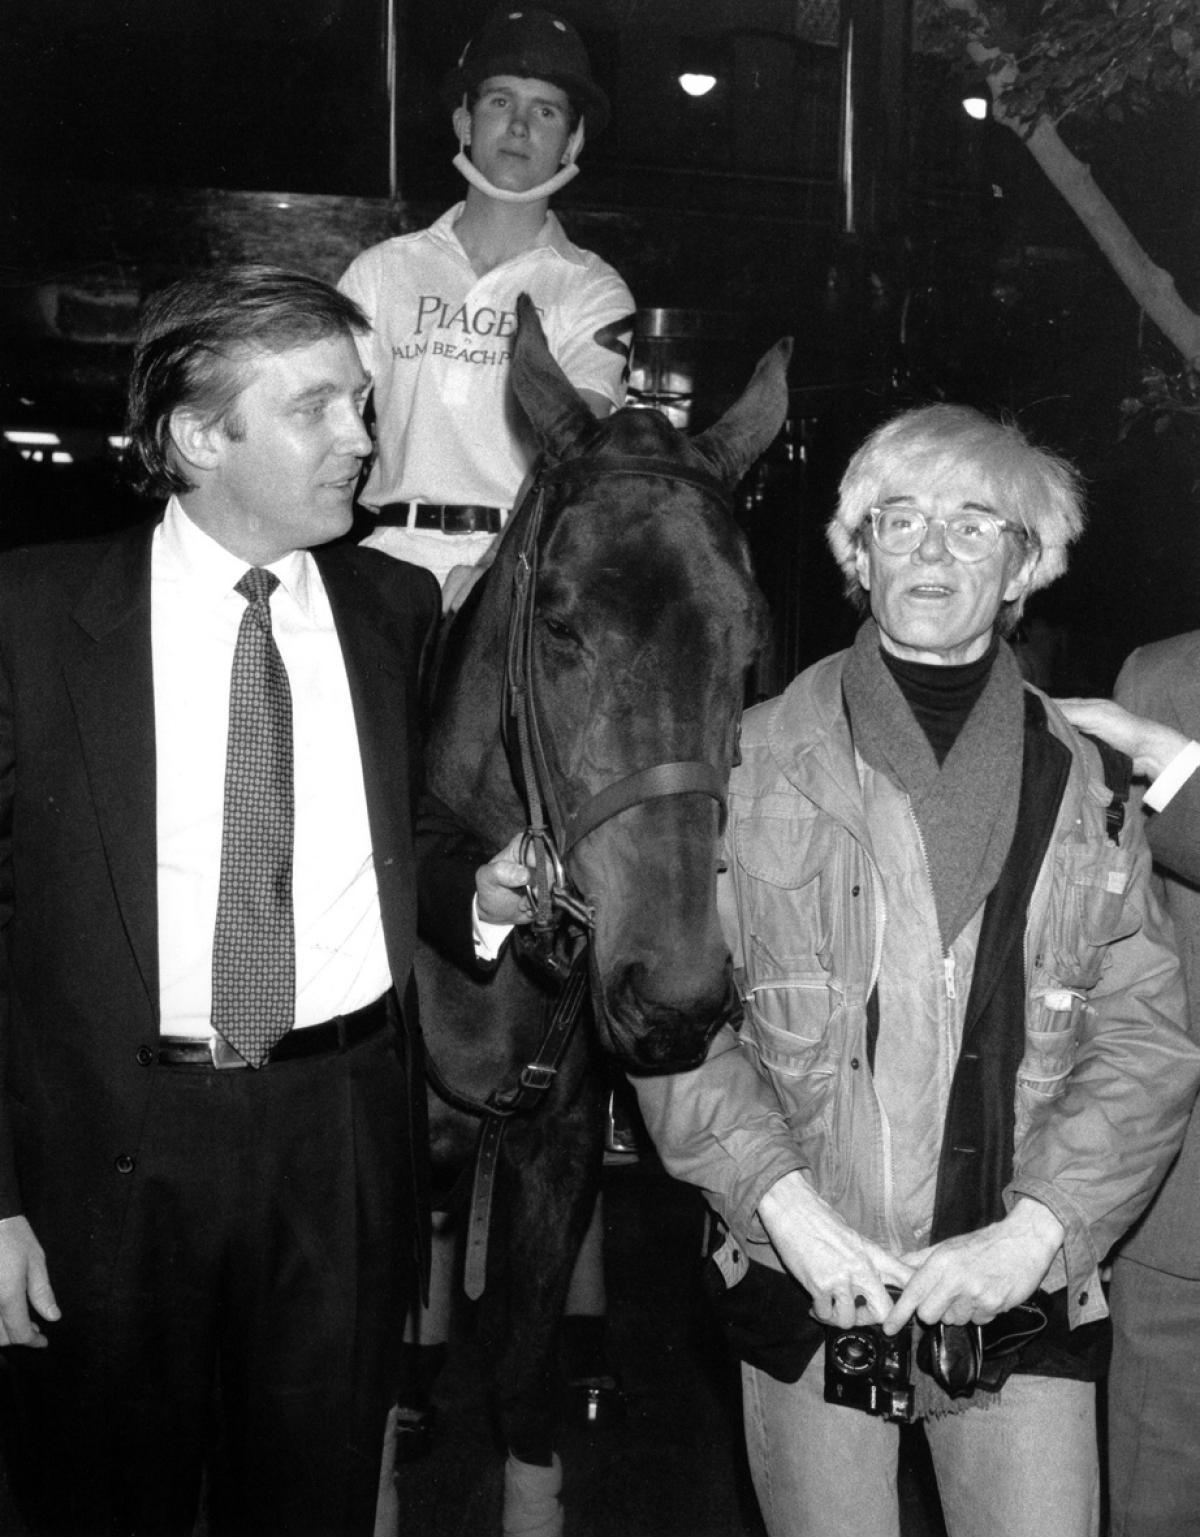 Andy Warhol and donald trump in 1983 with a race horse. i can't get off of a horse race theme here. america loves a winner.